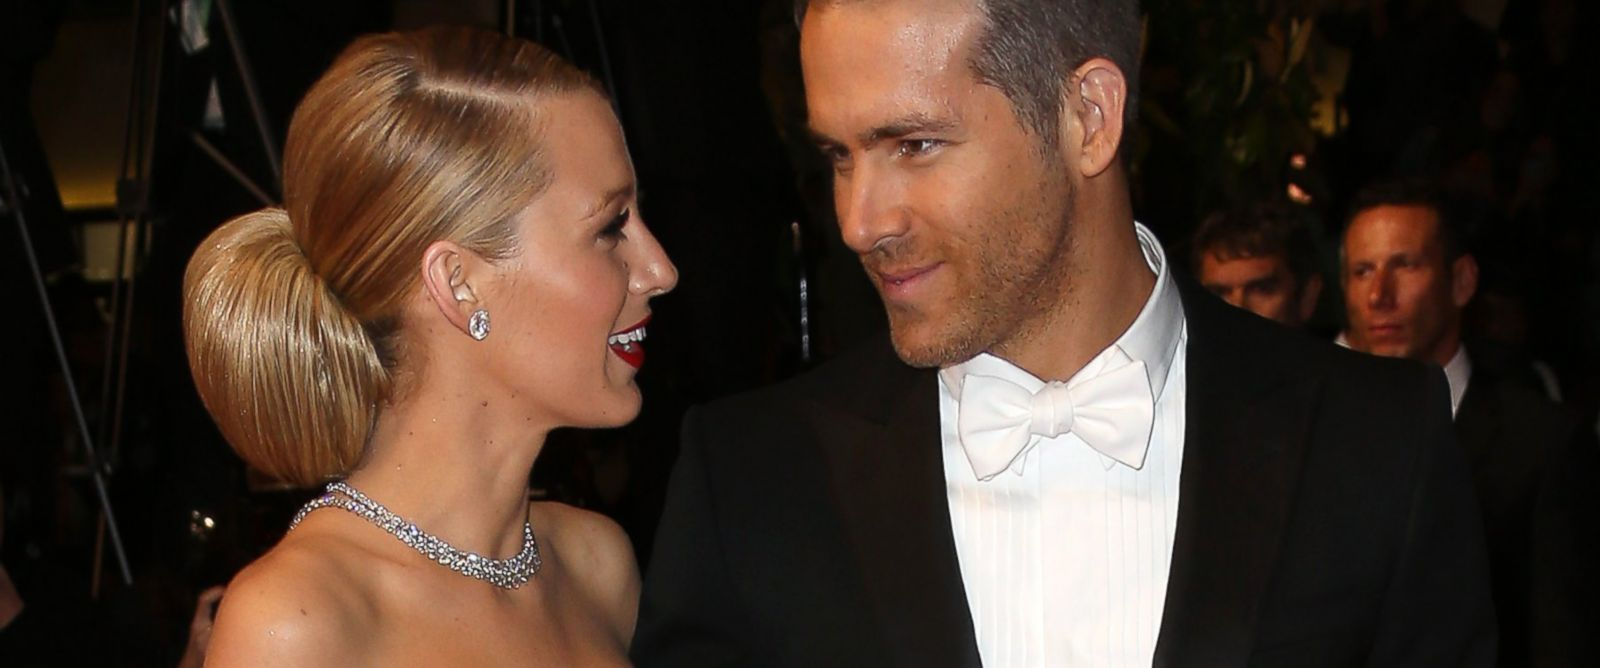 PHOTO: Blake Lively and Ryan Reynolds attend The Captive premiere during the 67th Annual Cannes Film Festival, May 16, 2014, in Cannes, France.